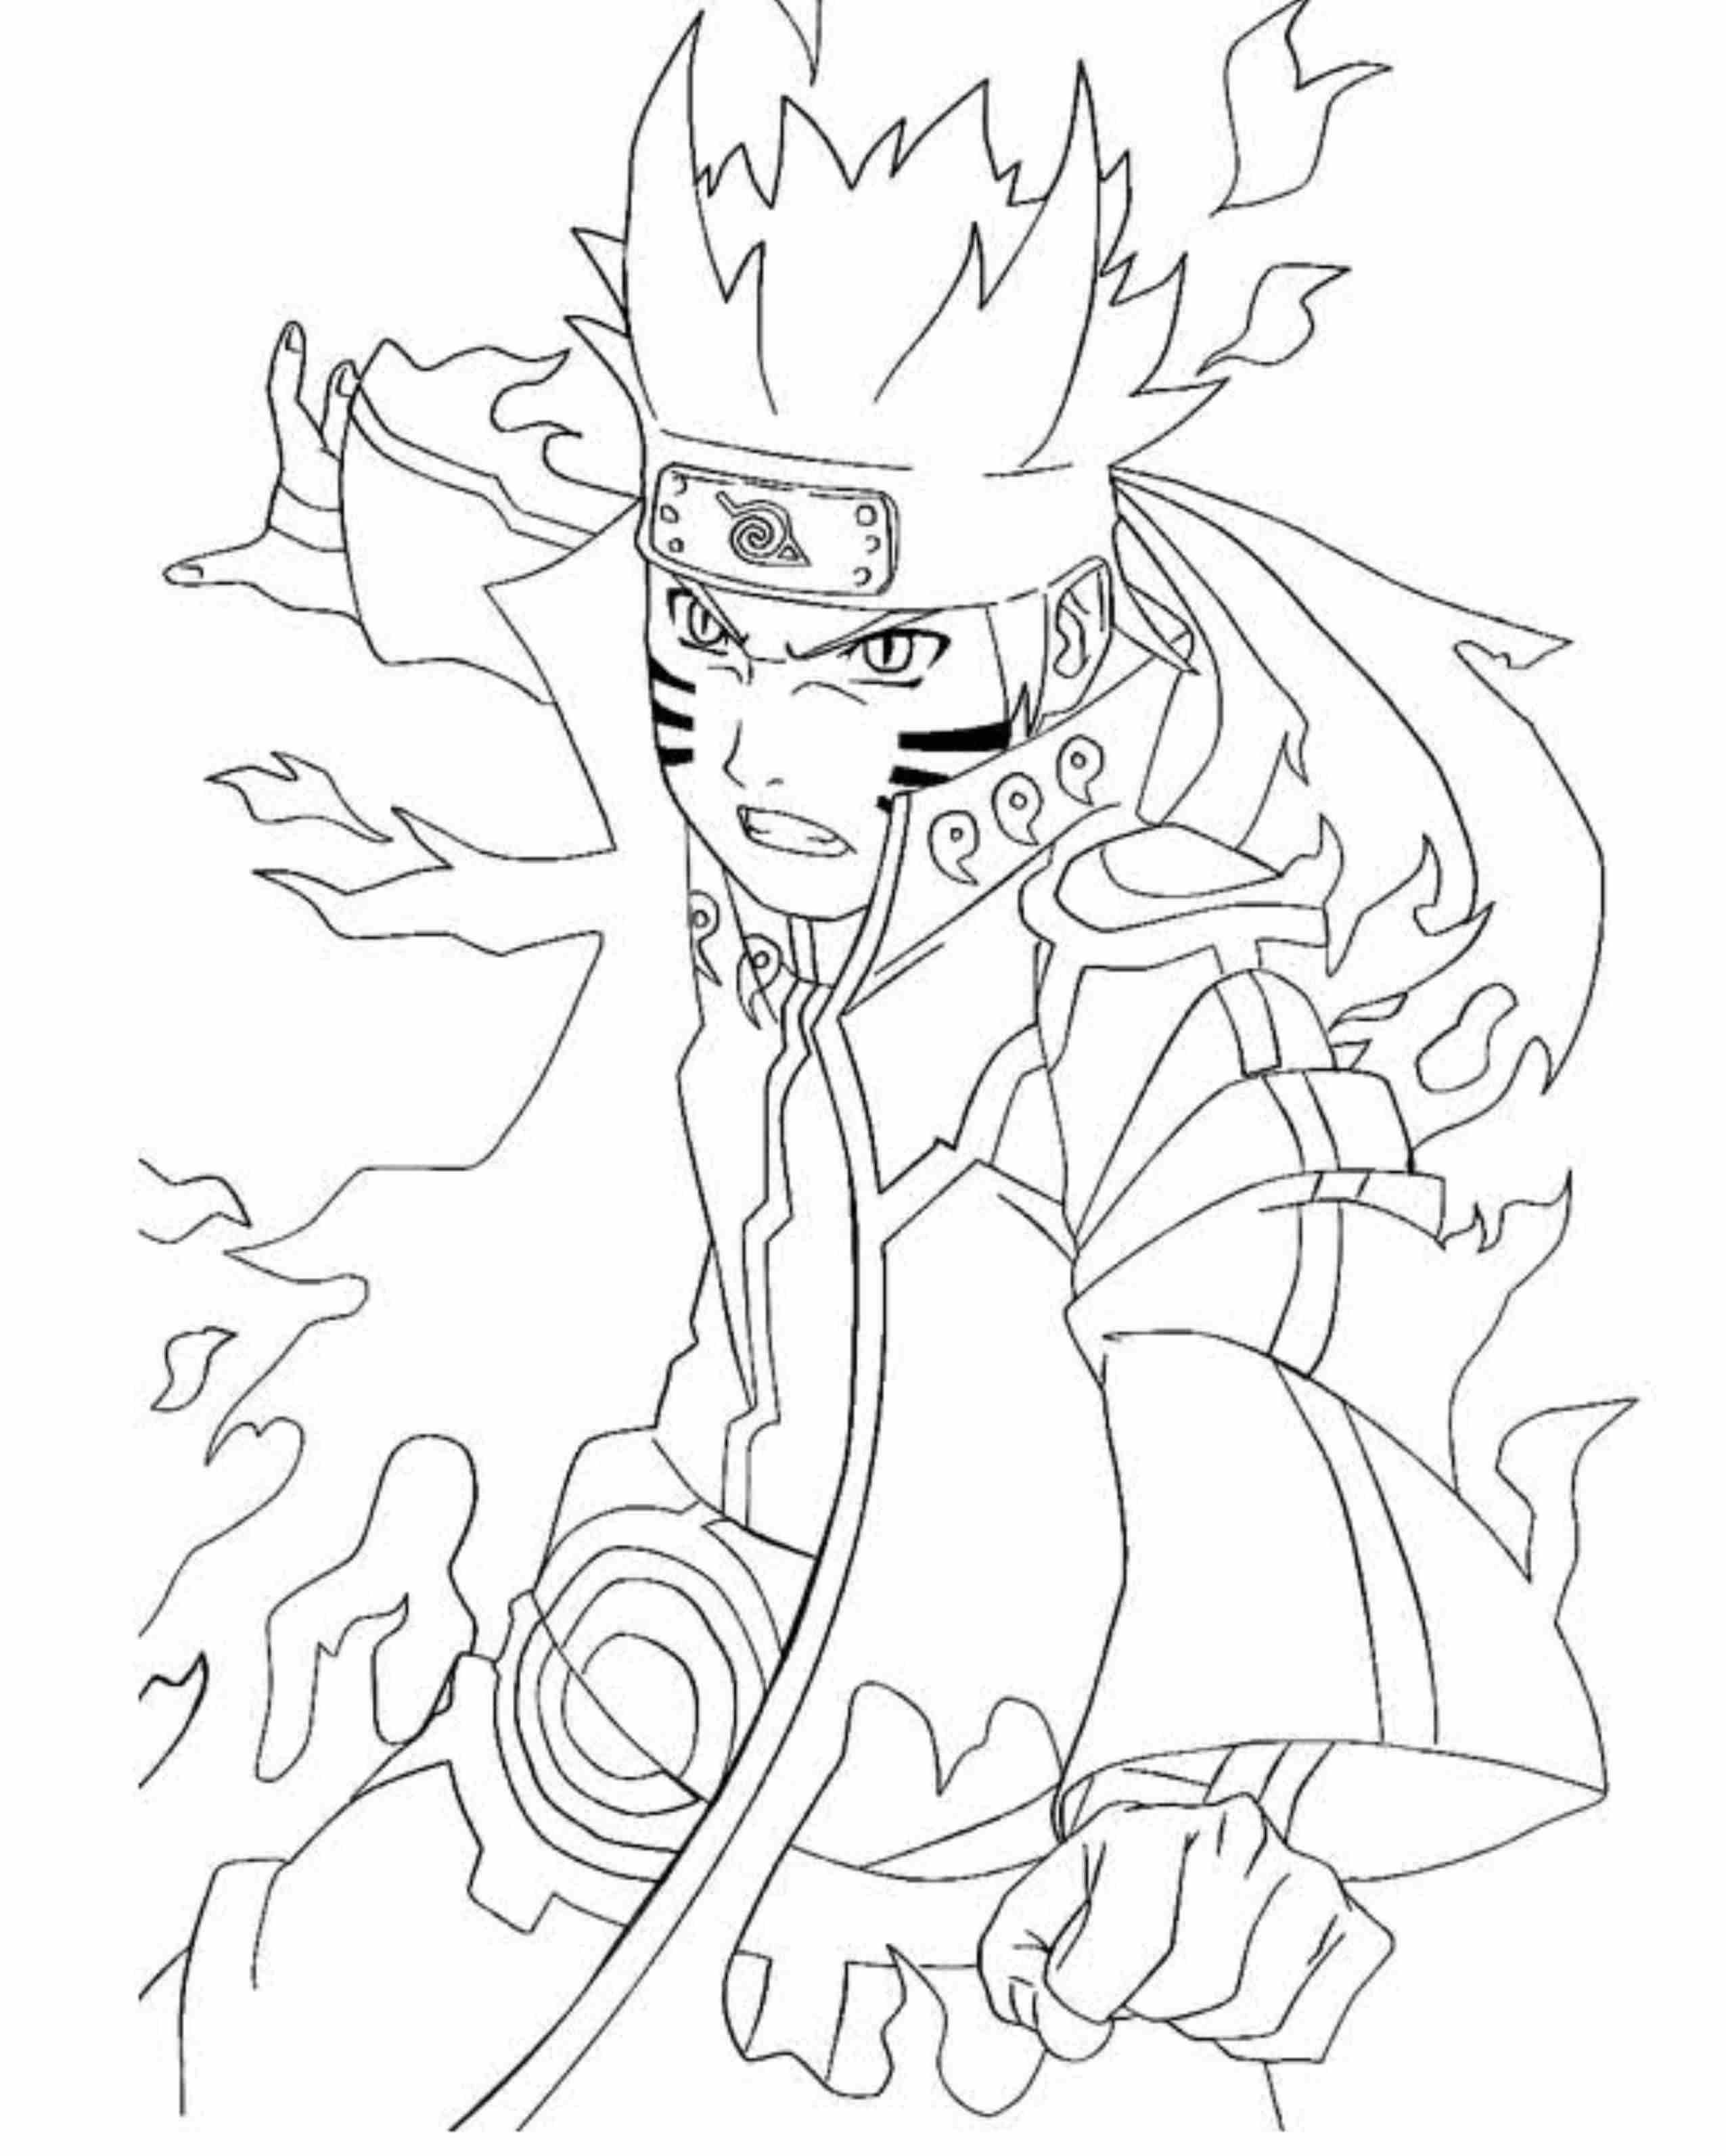 Coloring Pages Of Naruto Shippuden Characters Printable Kids Colouring Pages Cartoon Coloring Pages Chibi Coloring Pages Unicorn Coloring Pages